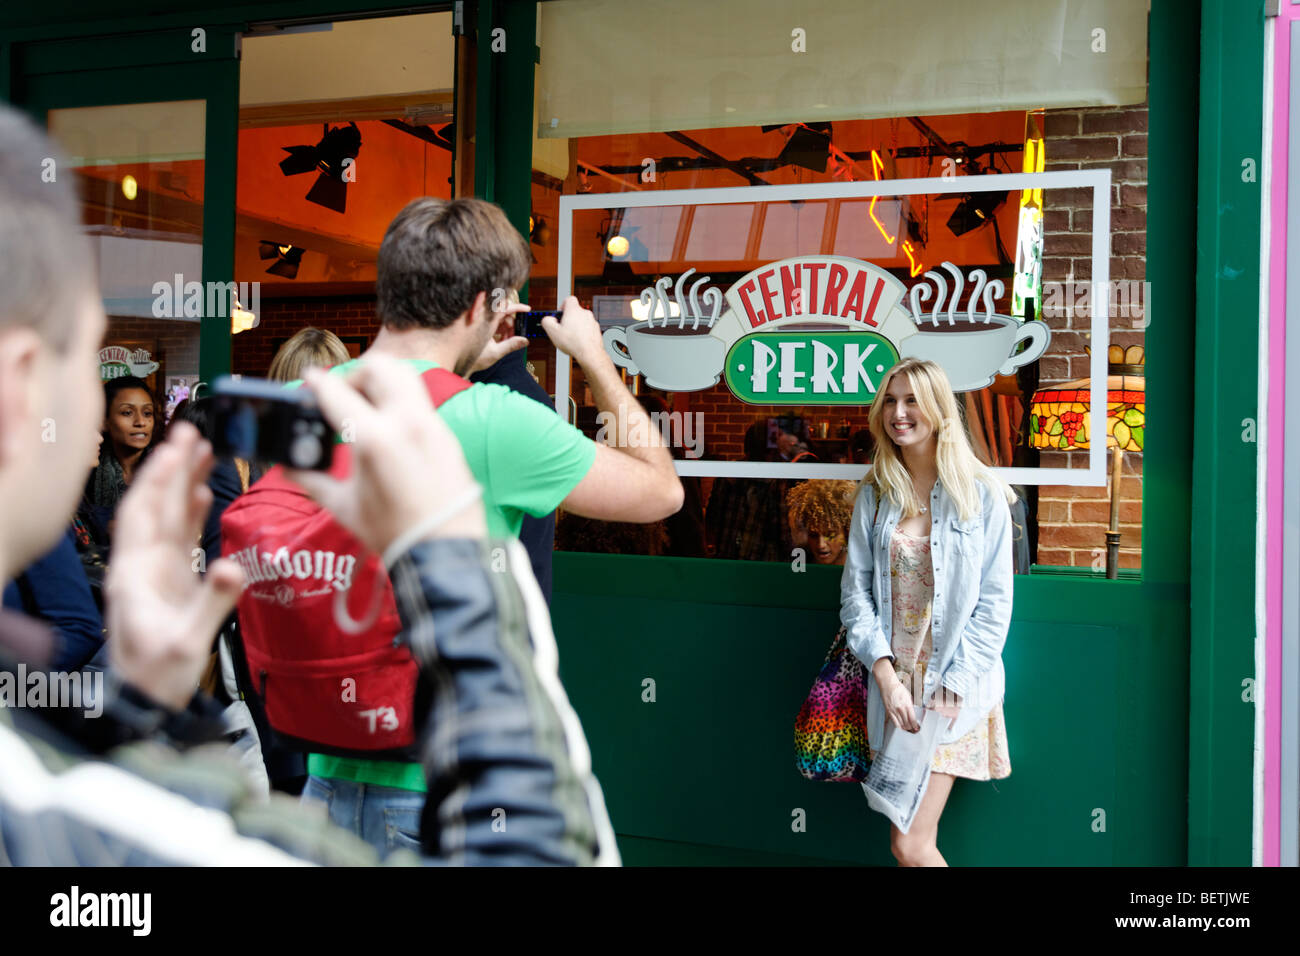 Fans of TV series 'Friends' having their picture taken outside mock up of Central Perk cafe. London. Britain. - Stock Image